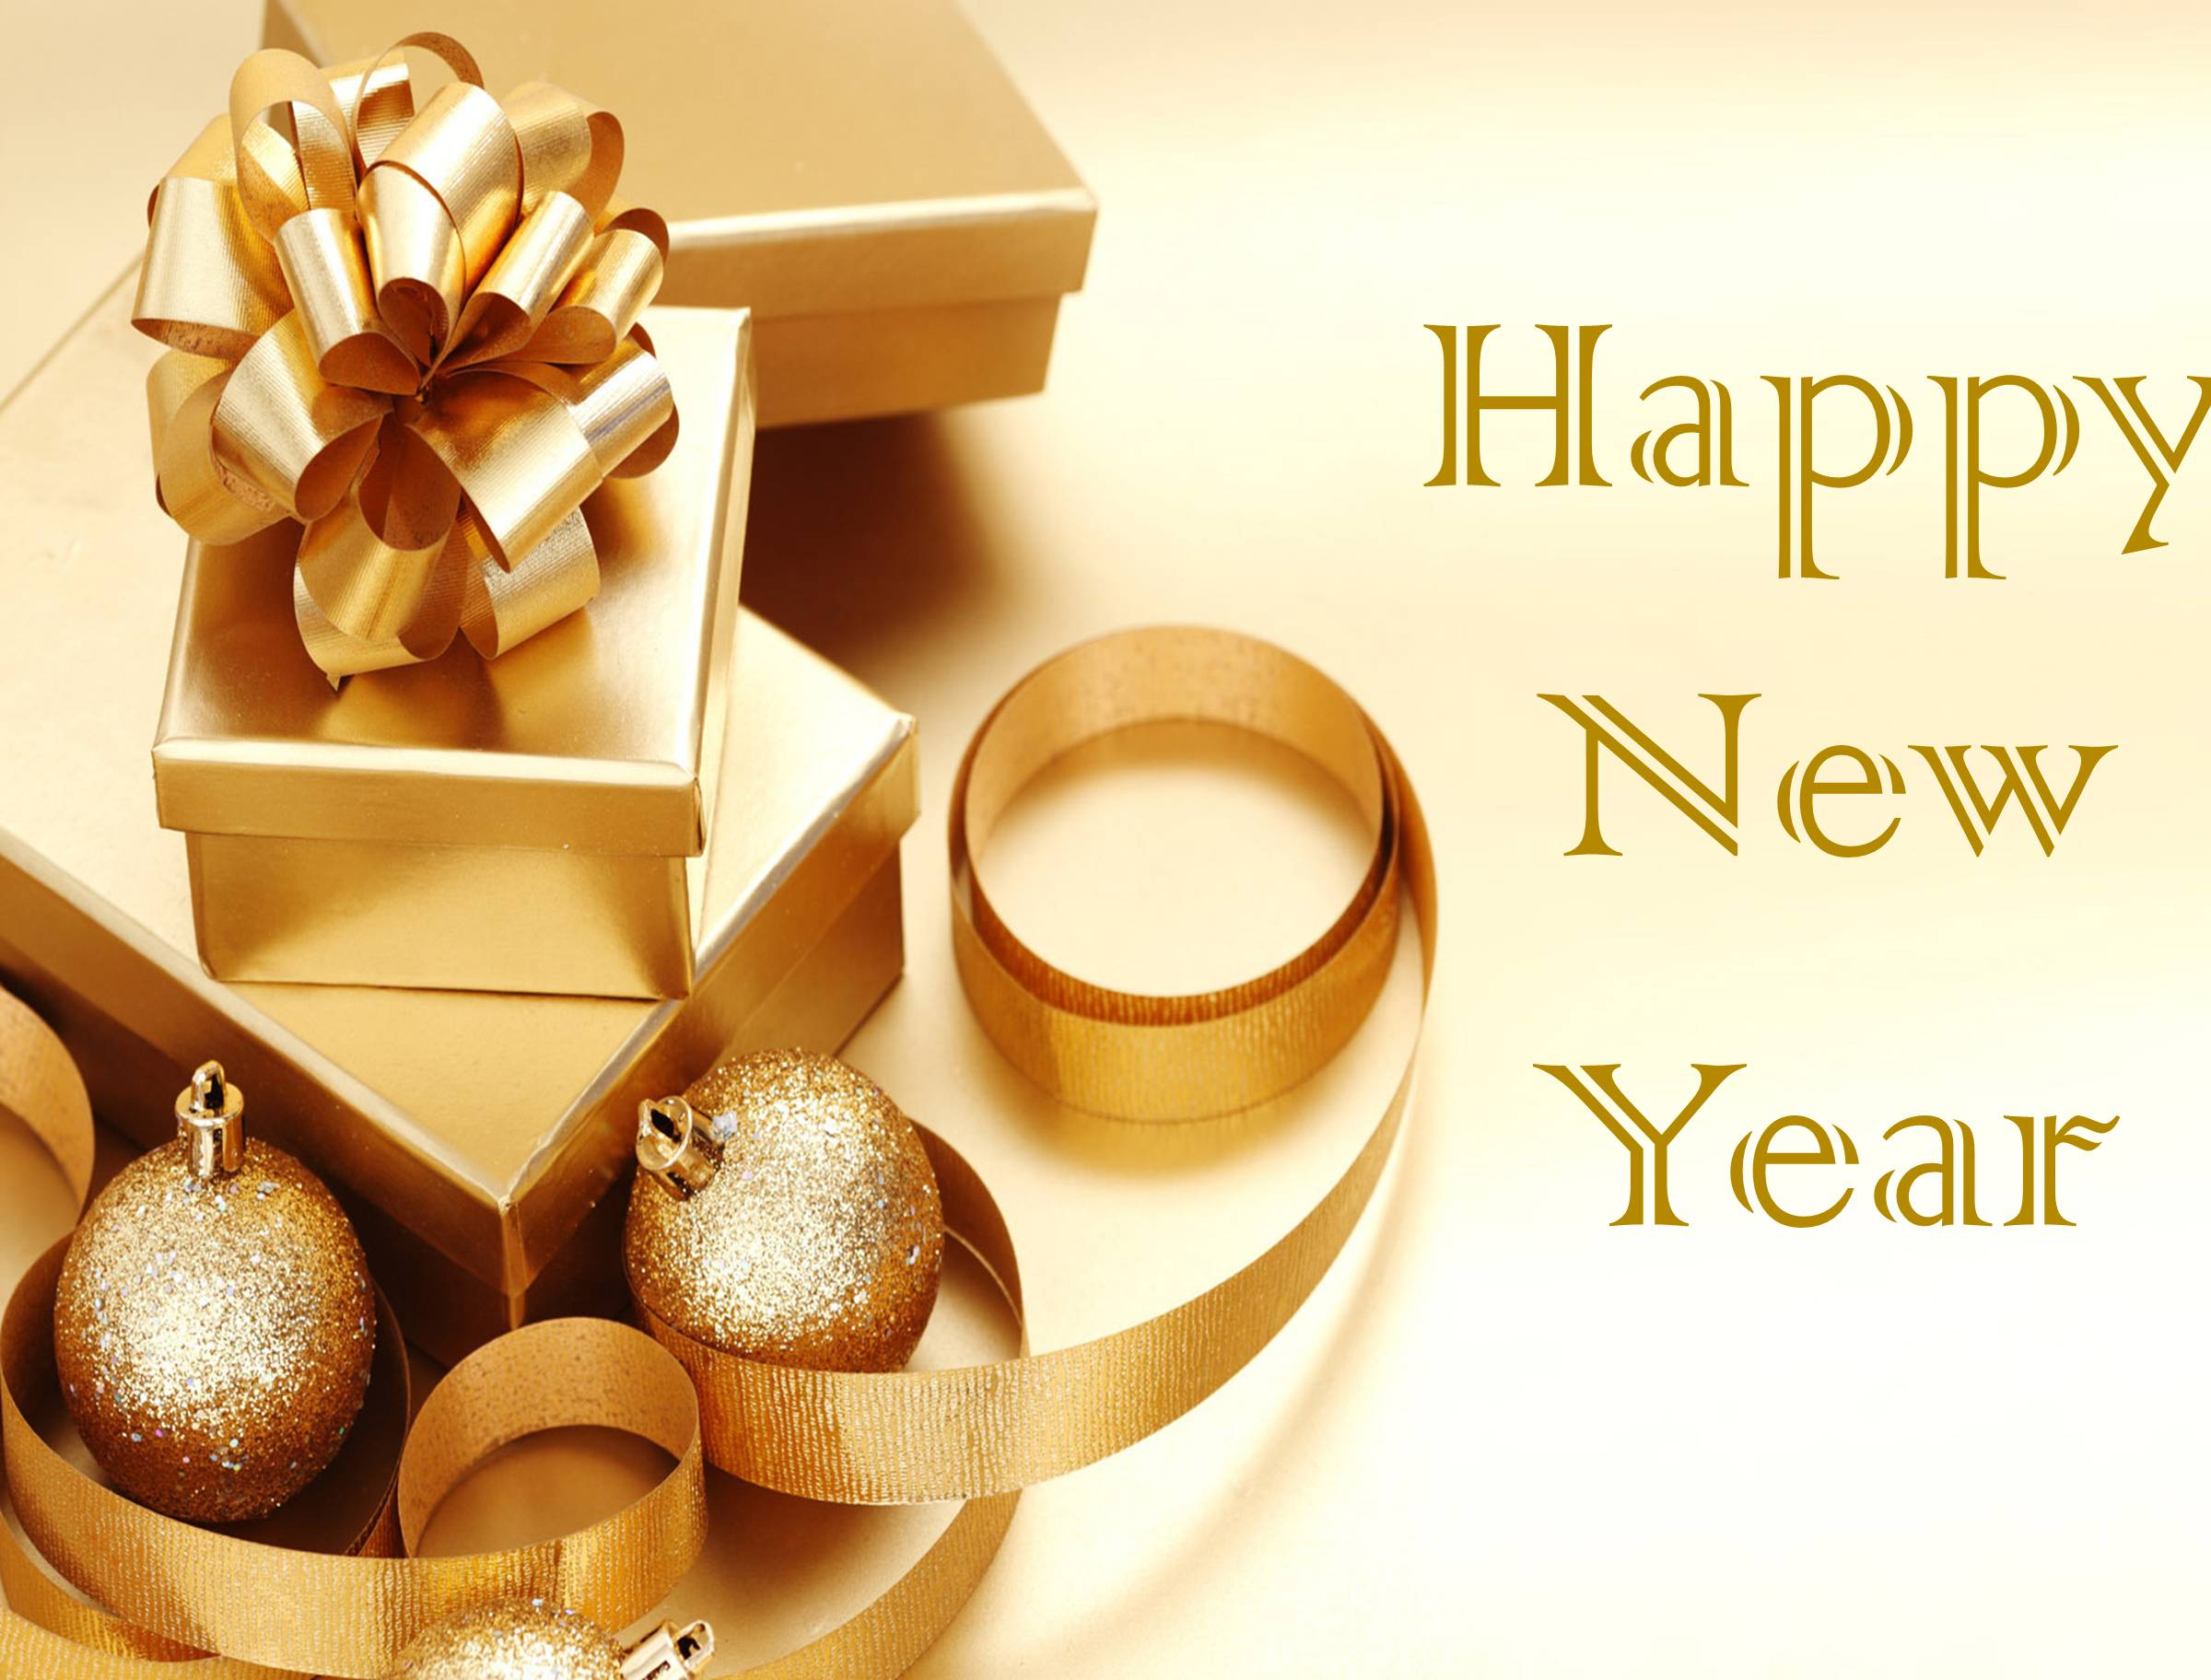 Happy New Year Wallpapers 2015 Hd Images Download 2   High 2400x1824